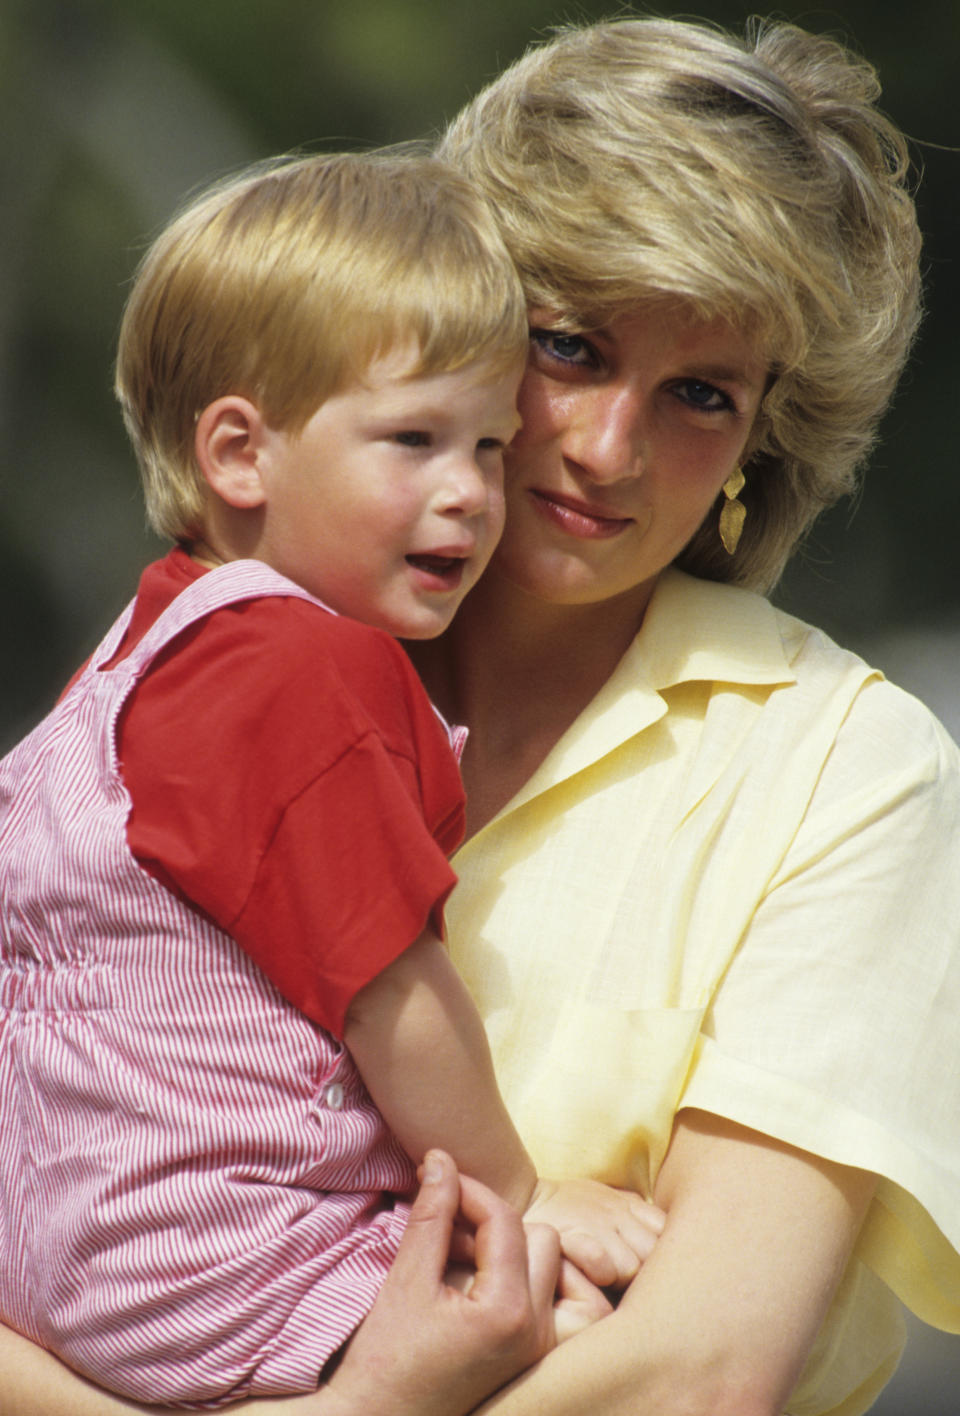 Diana, Princess of Wales with Prince Harry on holiday in Majorca, Spain on August 10, 1987.